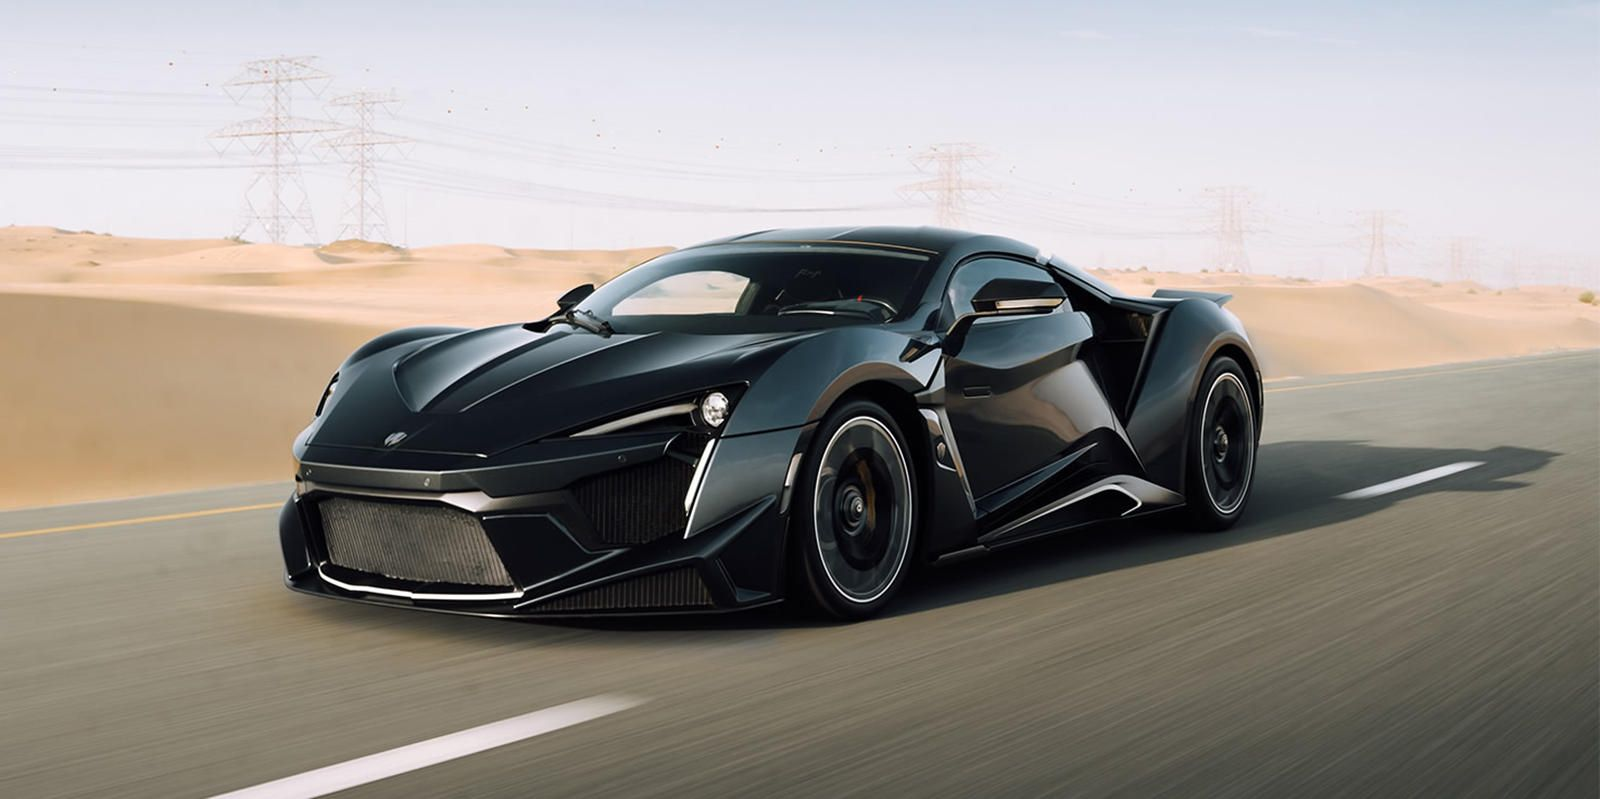 One Guy Just Bought 5 Fenyr Supersport Hypercars That S A Spectacular Amount Of Money To Spend On The Same Car In 2020 Car In The World Supersport Dubai Cars